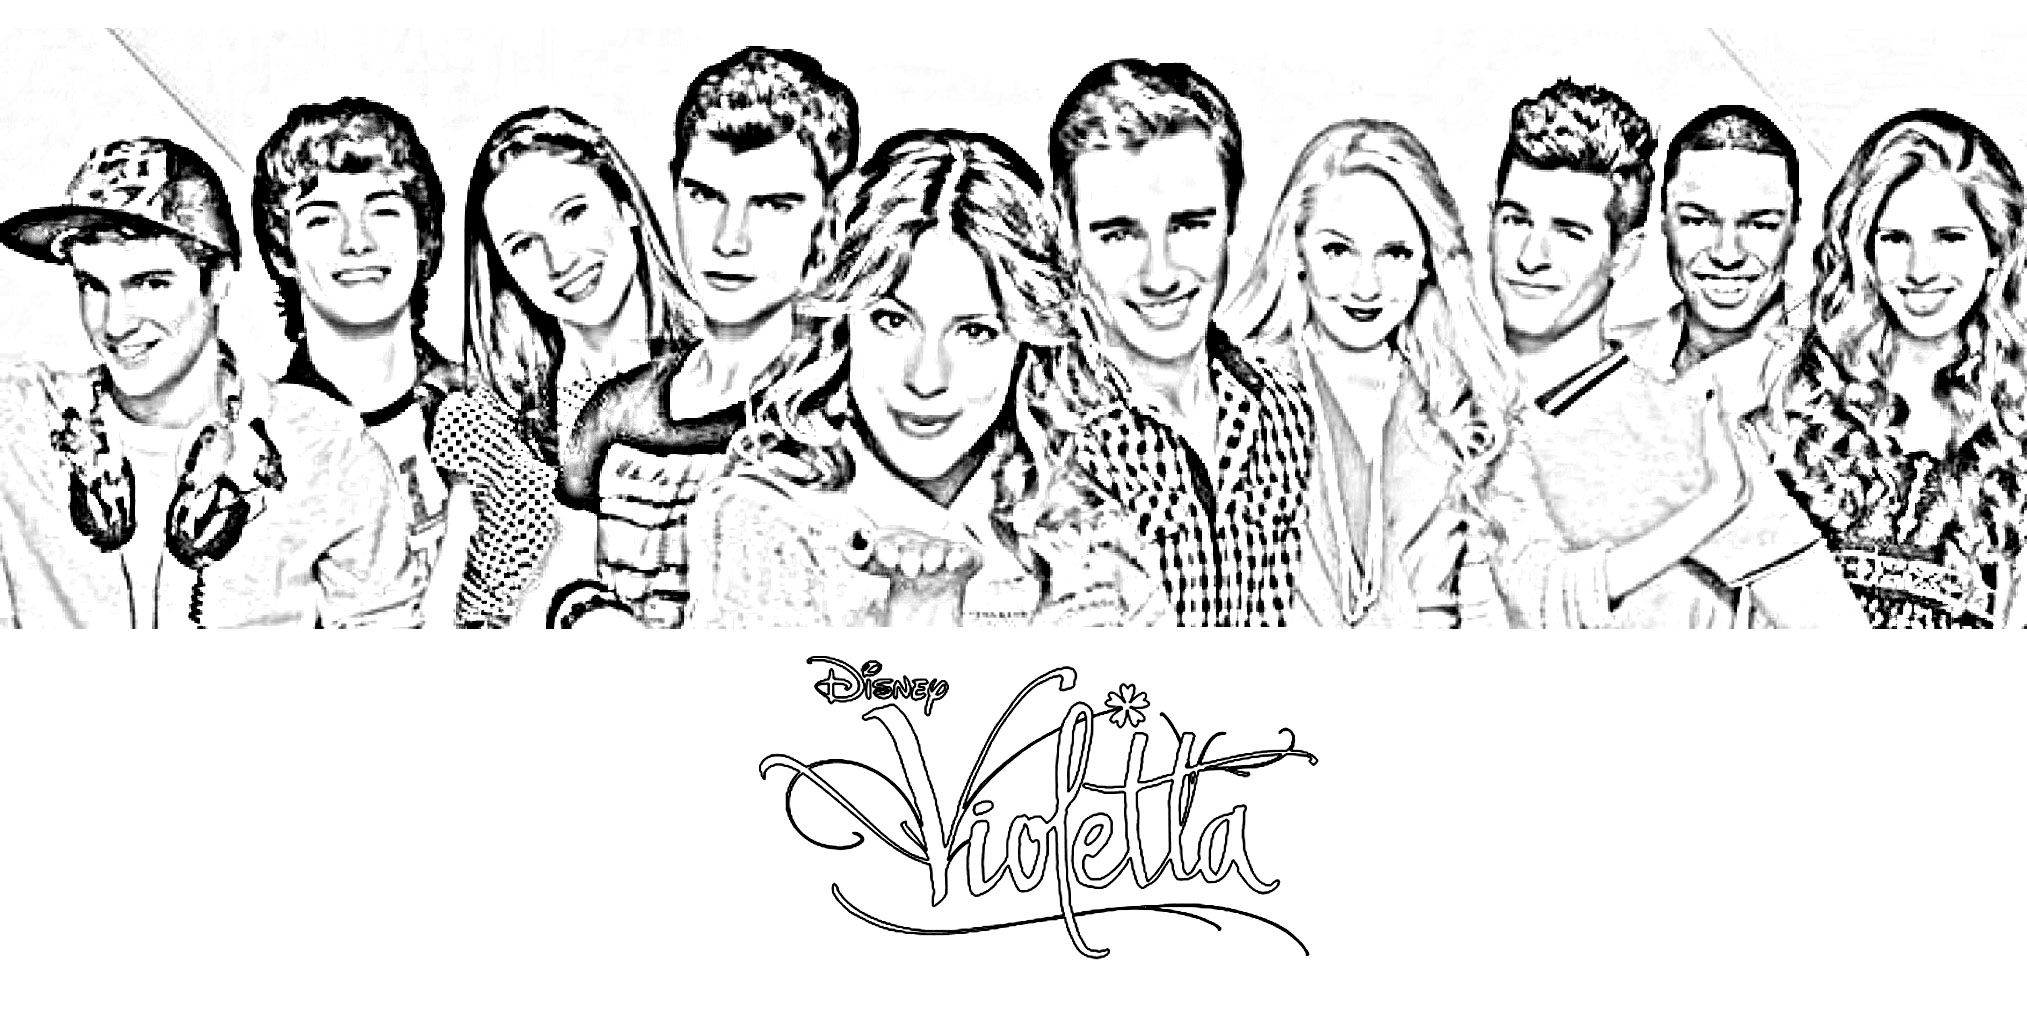 Printable coloring pages violetta - Printable Violetta Together With Her Friends Coloring Page Violetta Enjoys Spending Time Having Around Her Friends Tomas Leon Francesca And Many More